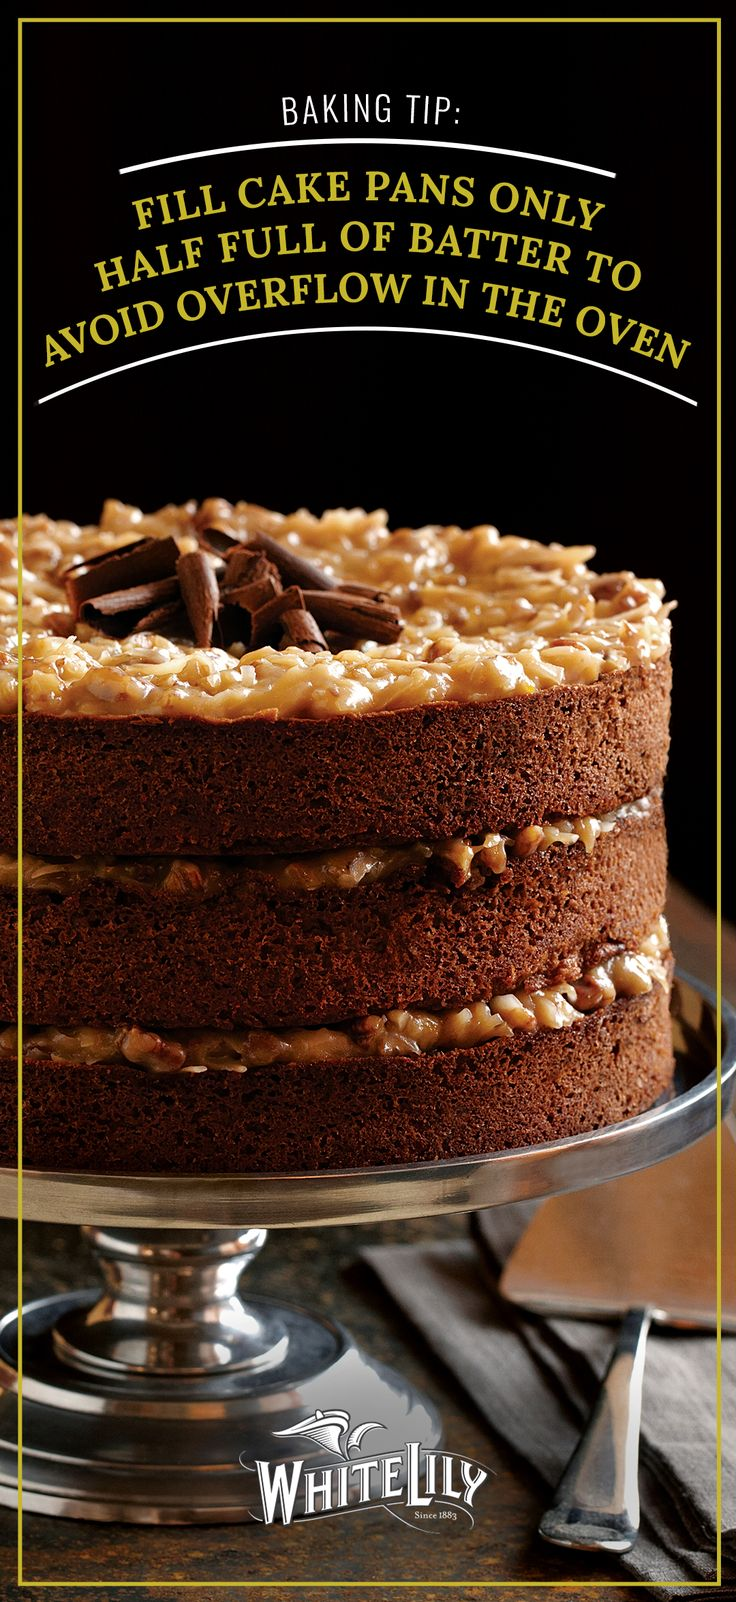 Baking Tip: When preparing cakes, fill cake pans only half full of batter to avoid overflow in the oven during baking. Use this helpful hint when making our German Chocolate Cake with Coconut Pecan Frosting dessert recipe.